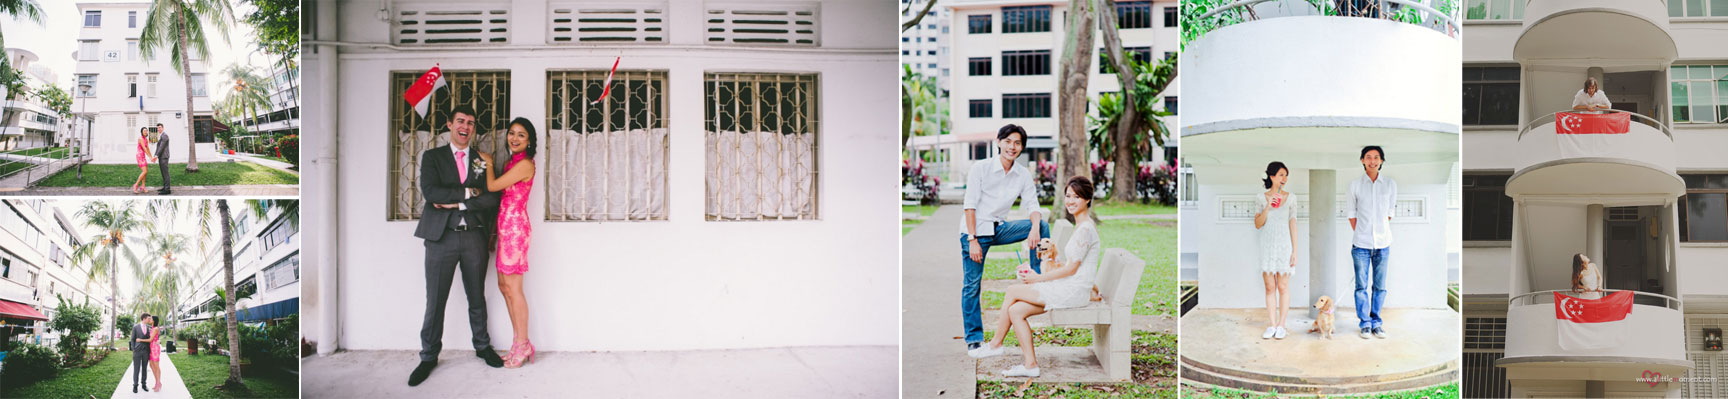 Tiong-Bahru-Estate-Wedding